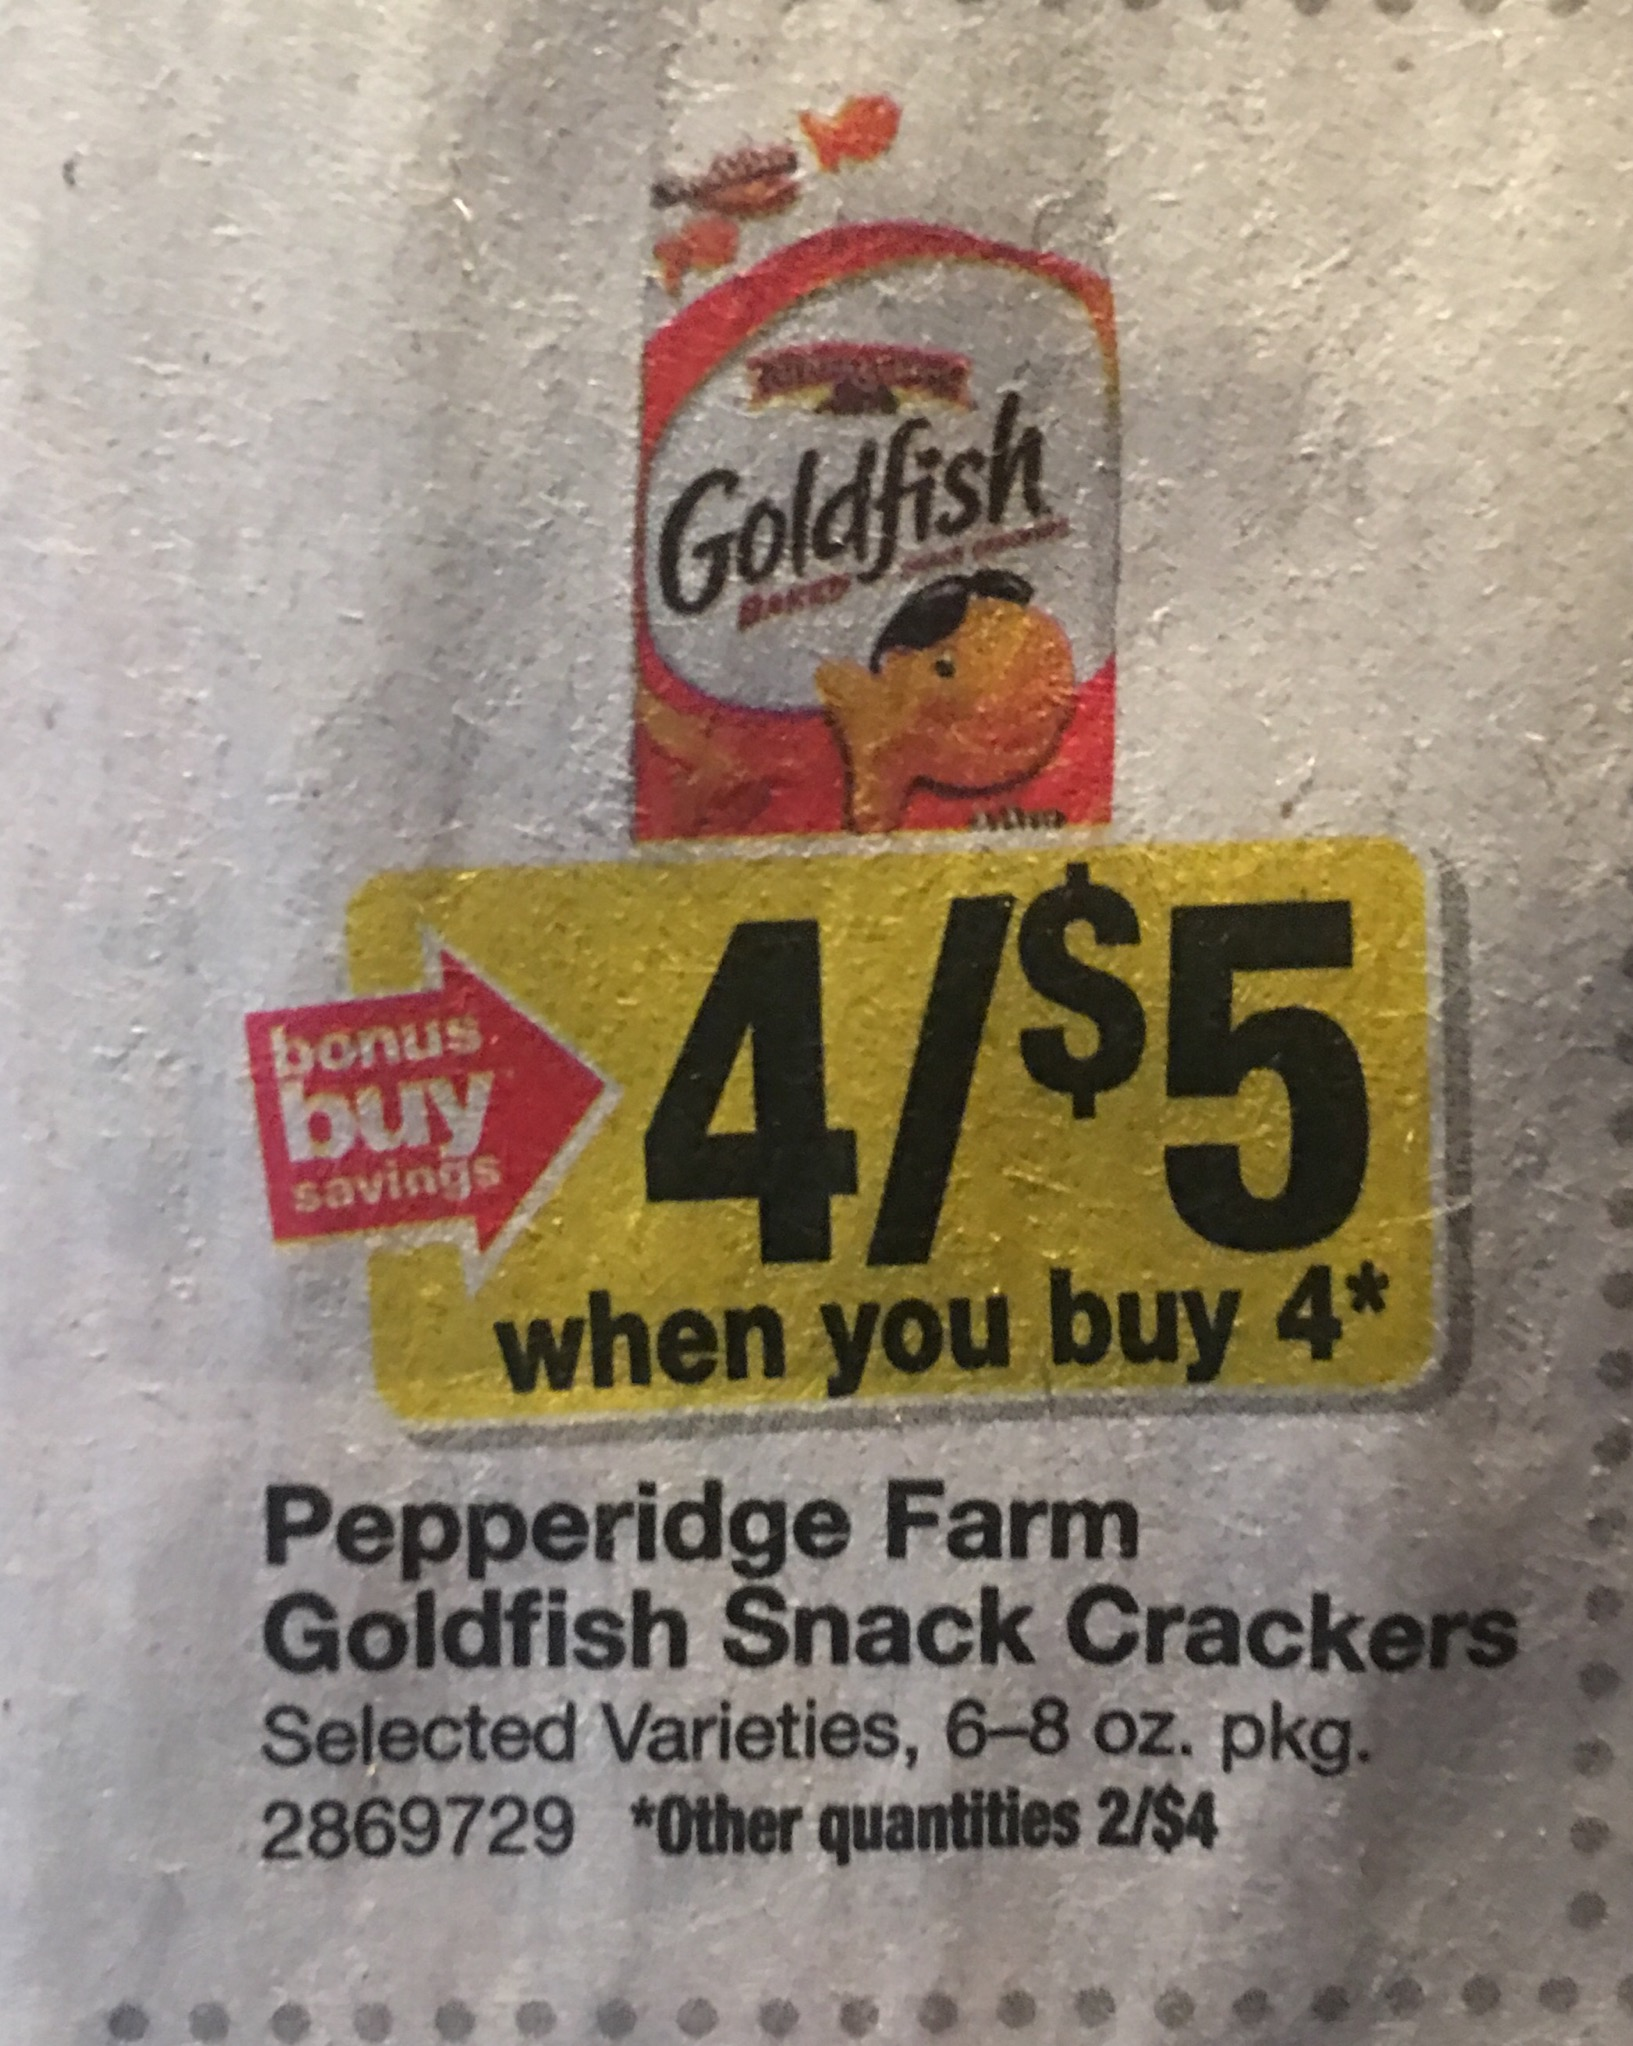 photograph about Goldfish Printable Coupons referred to as Large: Pepperidge Farm Goldfish Crackers Exactly $1.25 Every